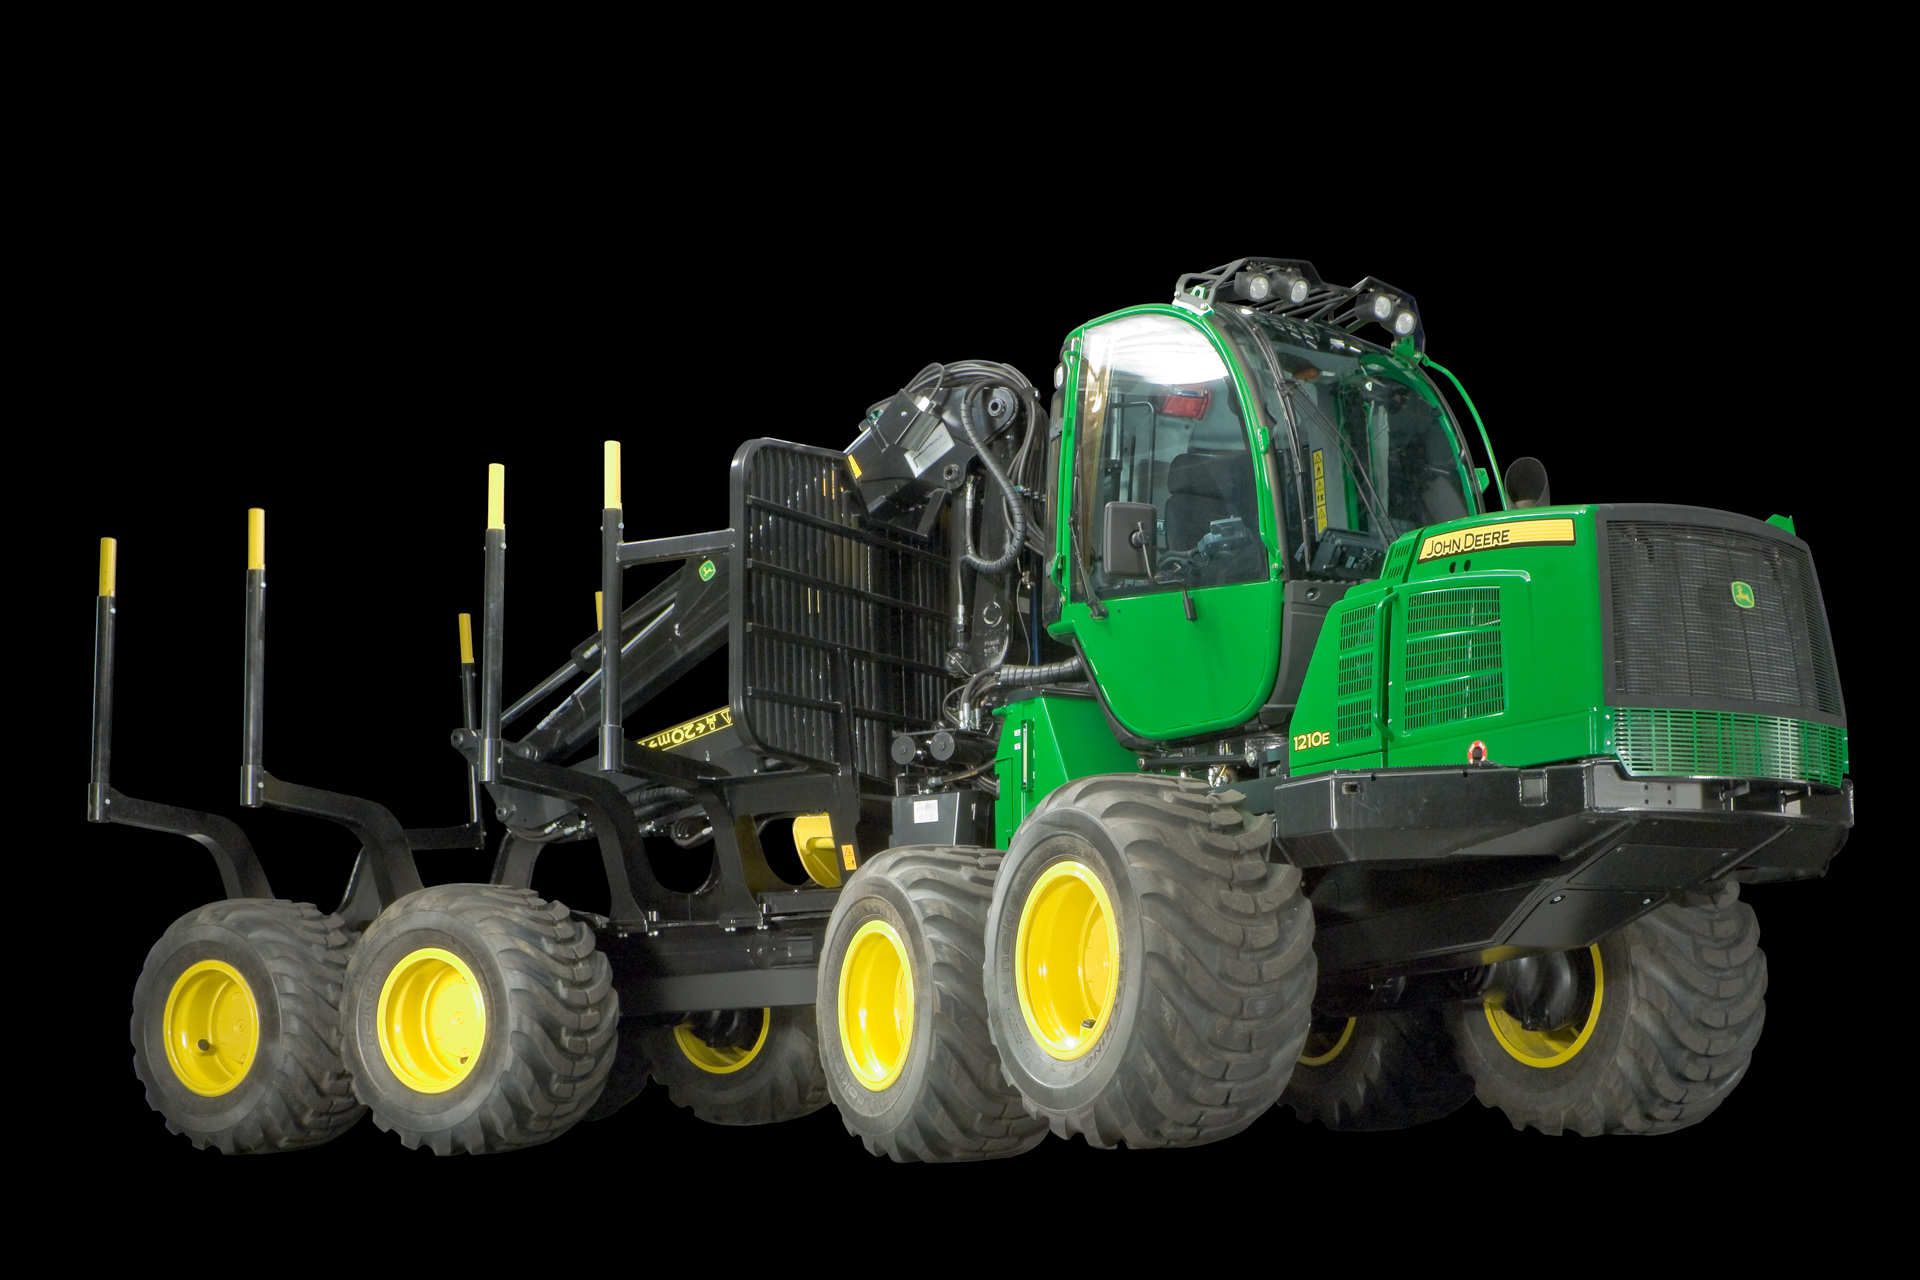 John Deere Forwarder 1210E photo 72011